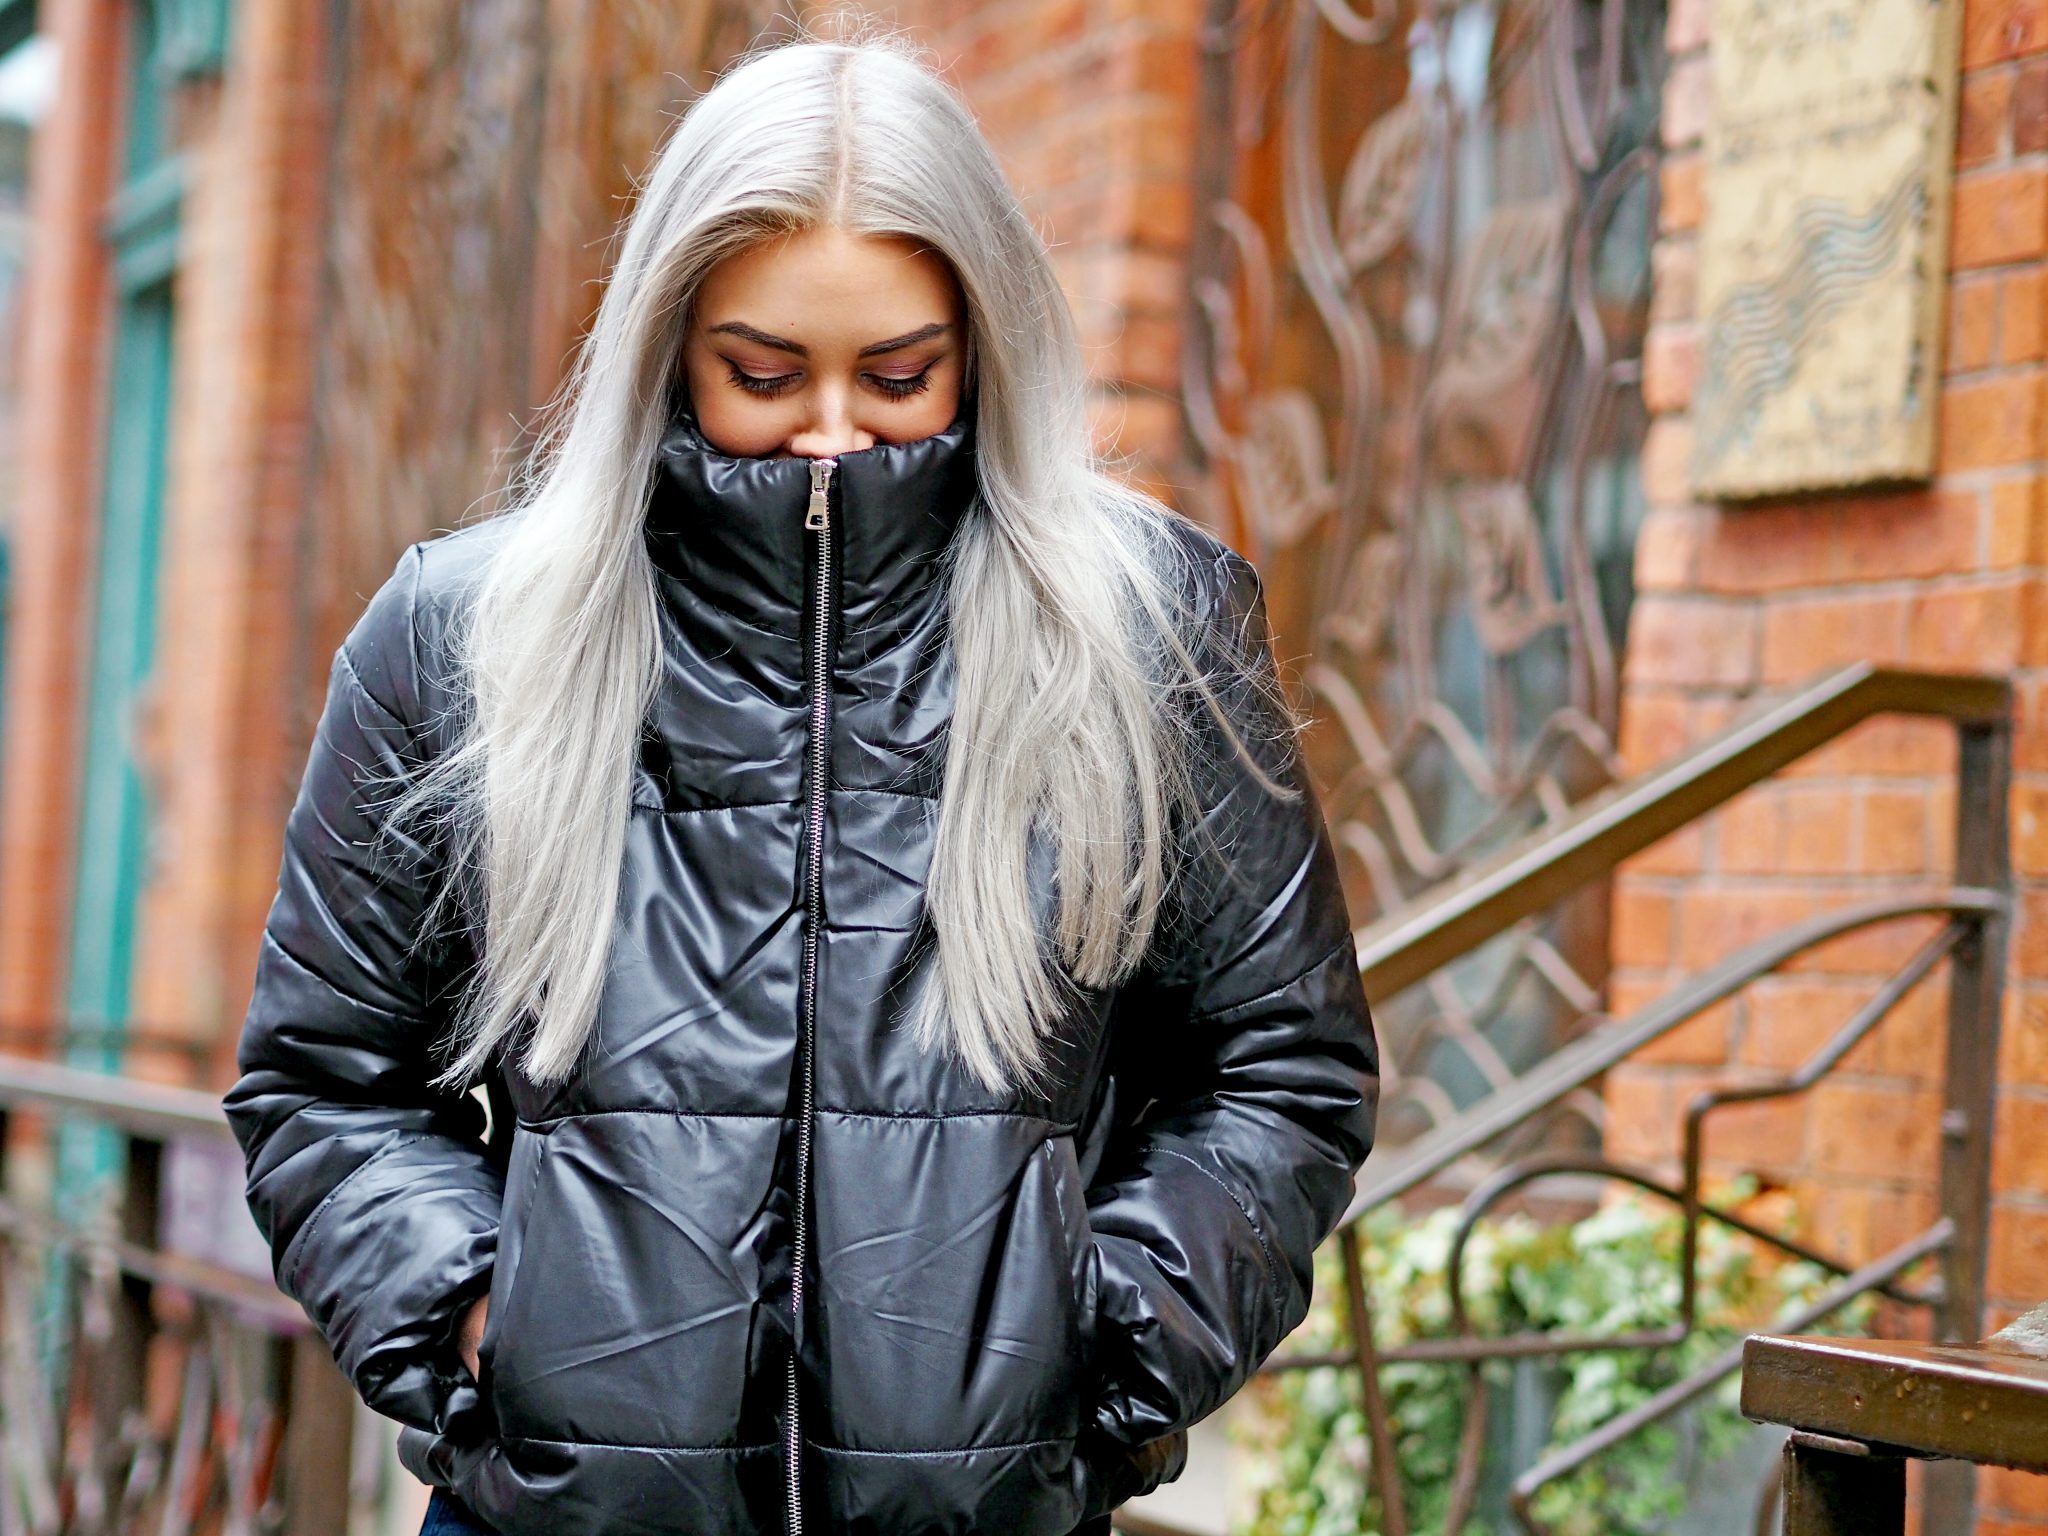 Laura Kate Lucas - Manchester Fashion, Lifestyle and Beauty Blogger   Lasula Outfit - Bad Girls Club Tee, Boots and Cropped Puffer Jacket